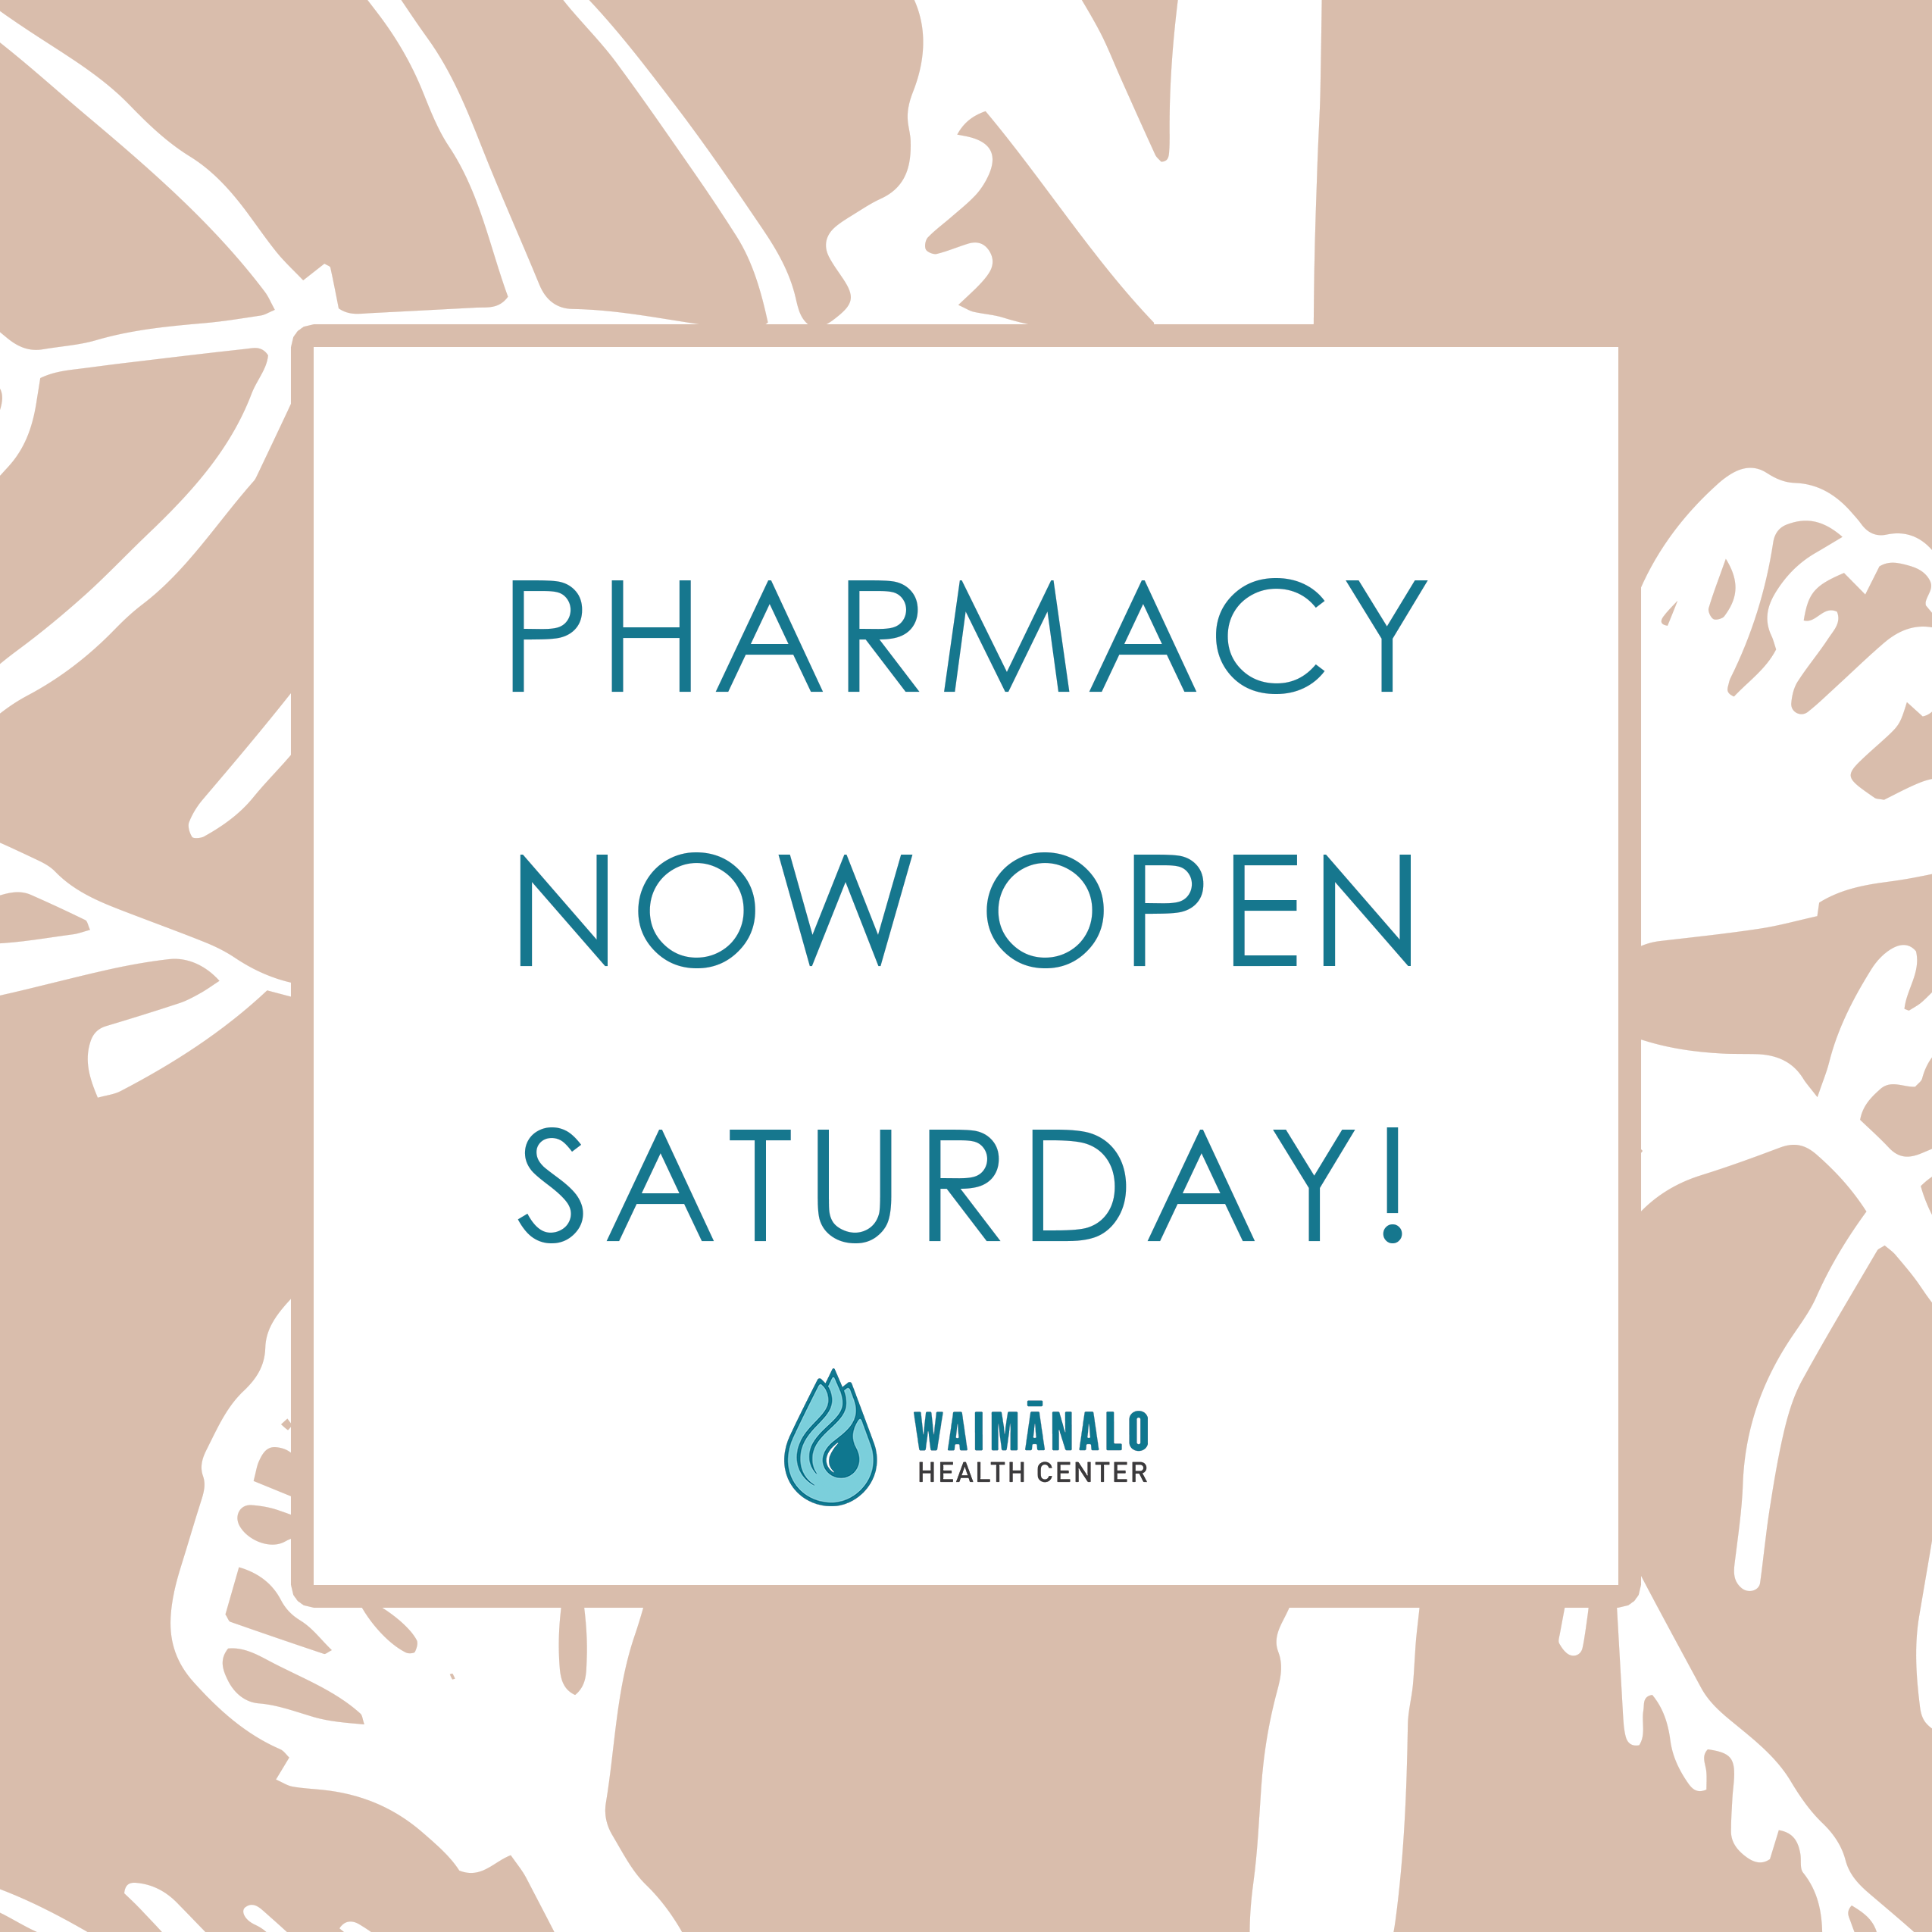 2020-12%20whc%20pharmacy%20open%20saturdays